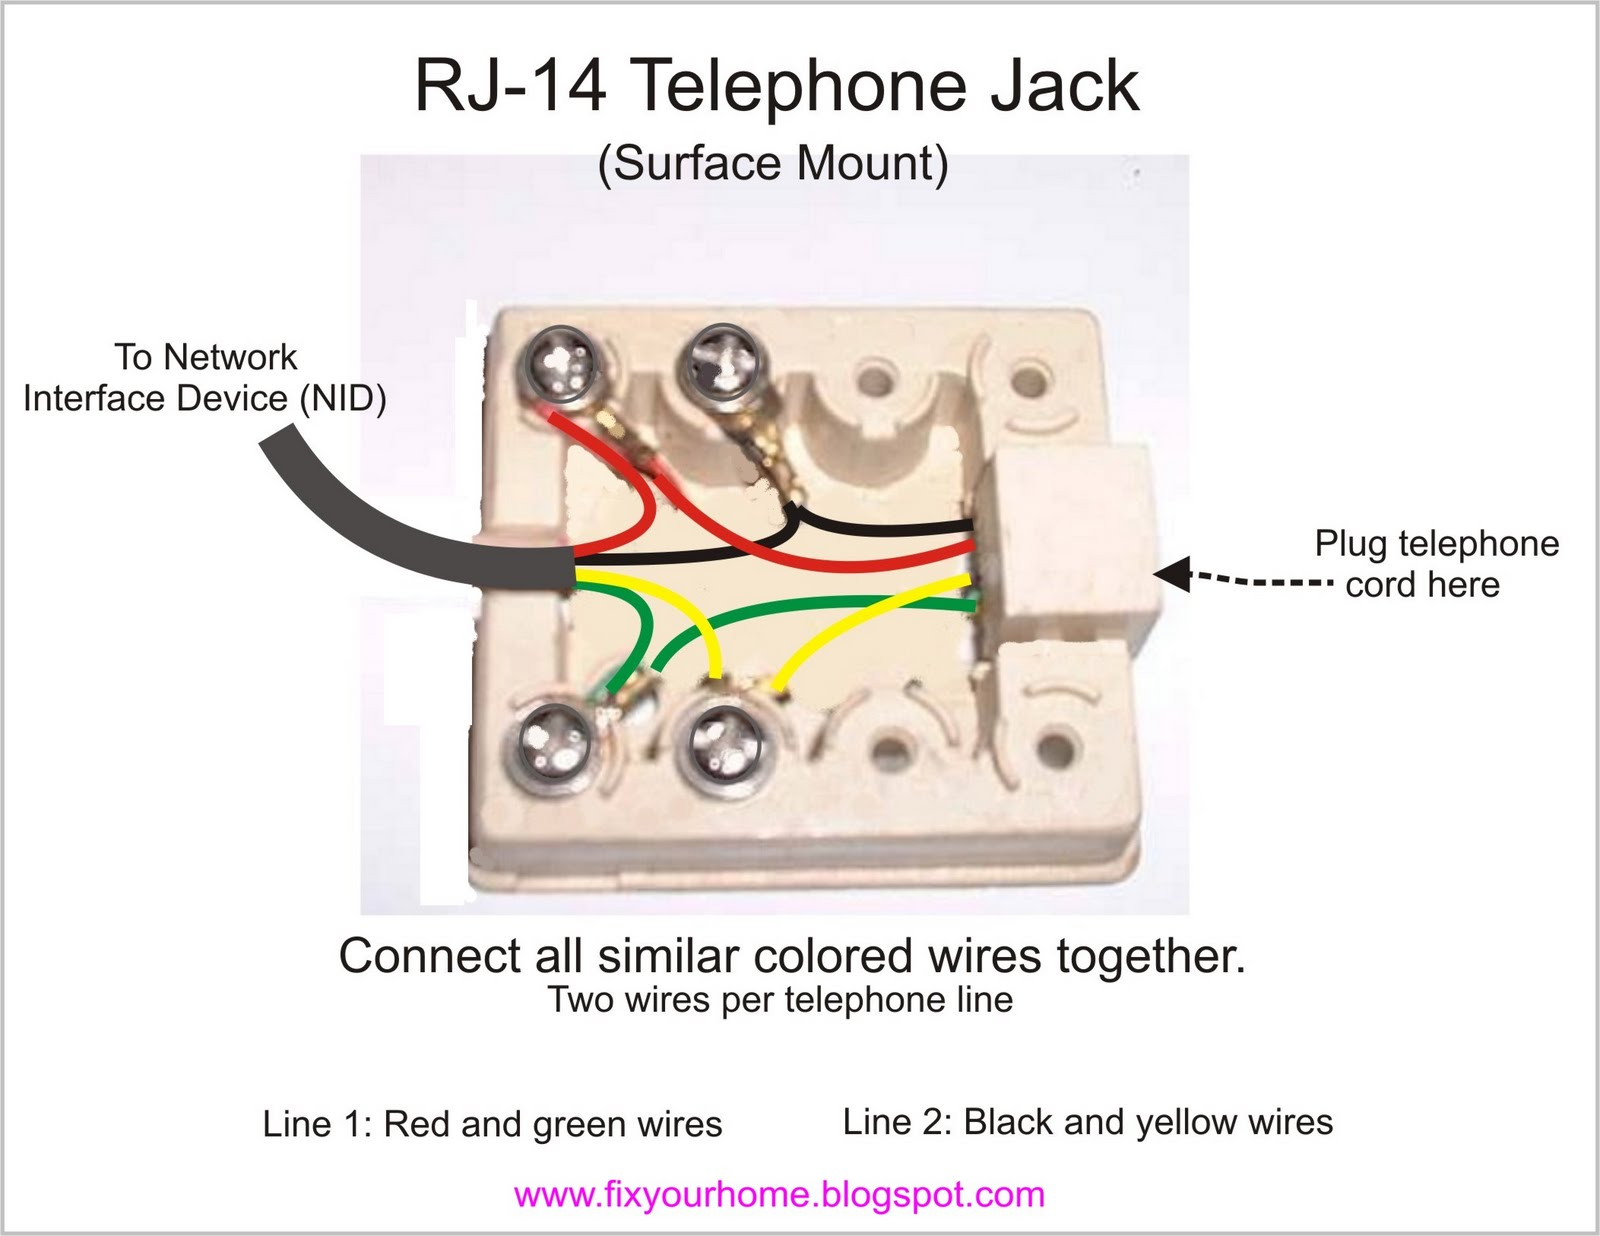 Wiring Diagram For Phone Jack : Fix your home